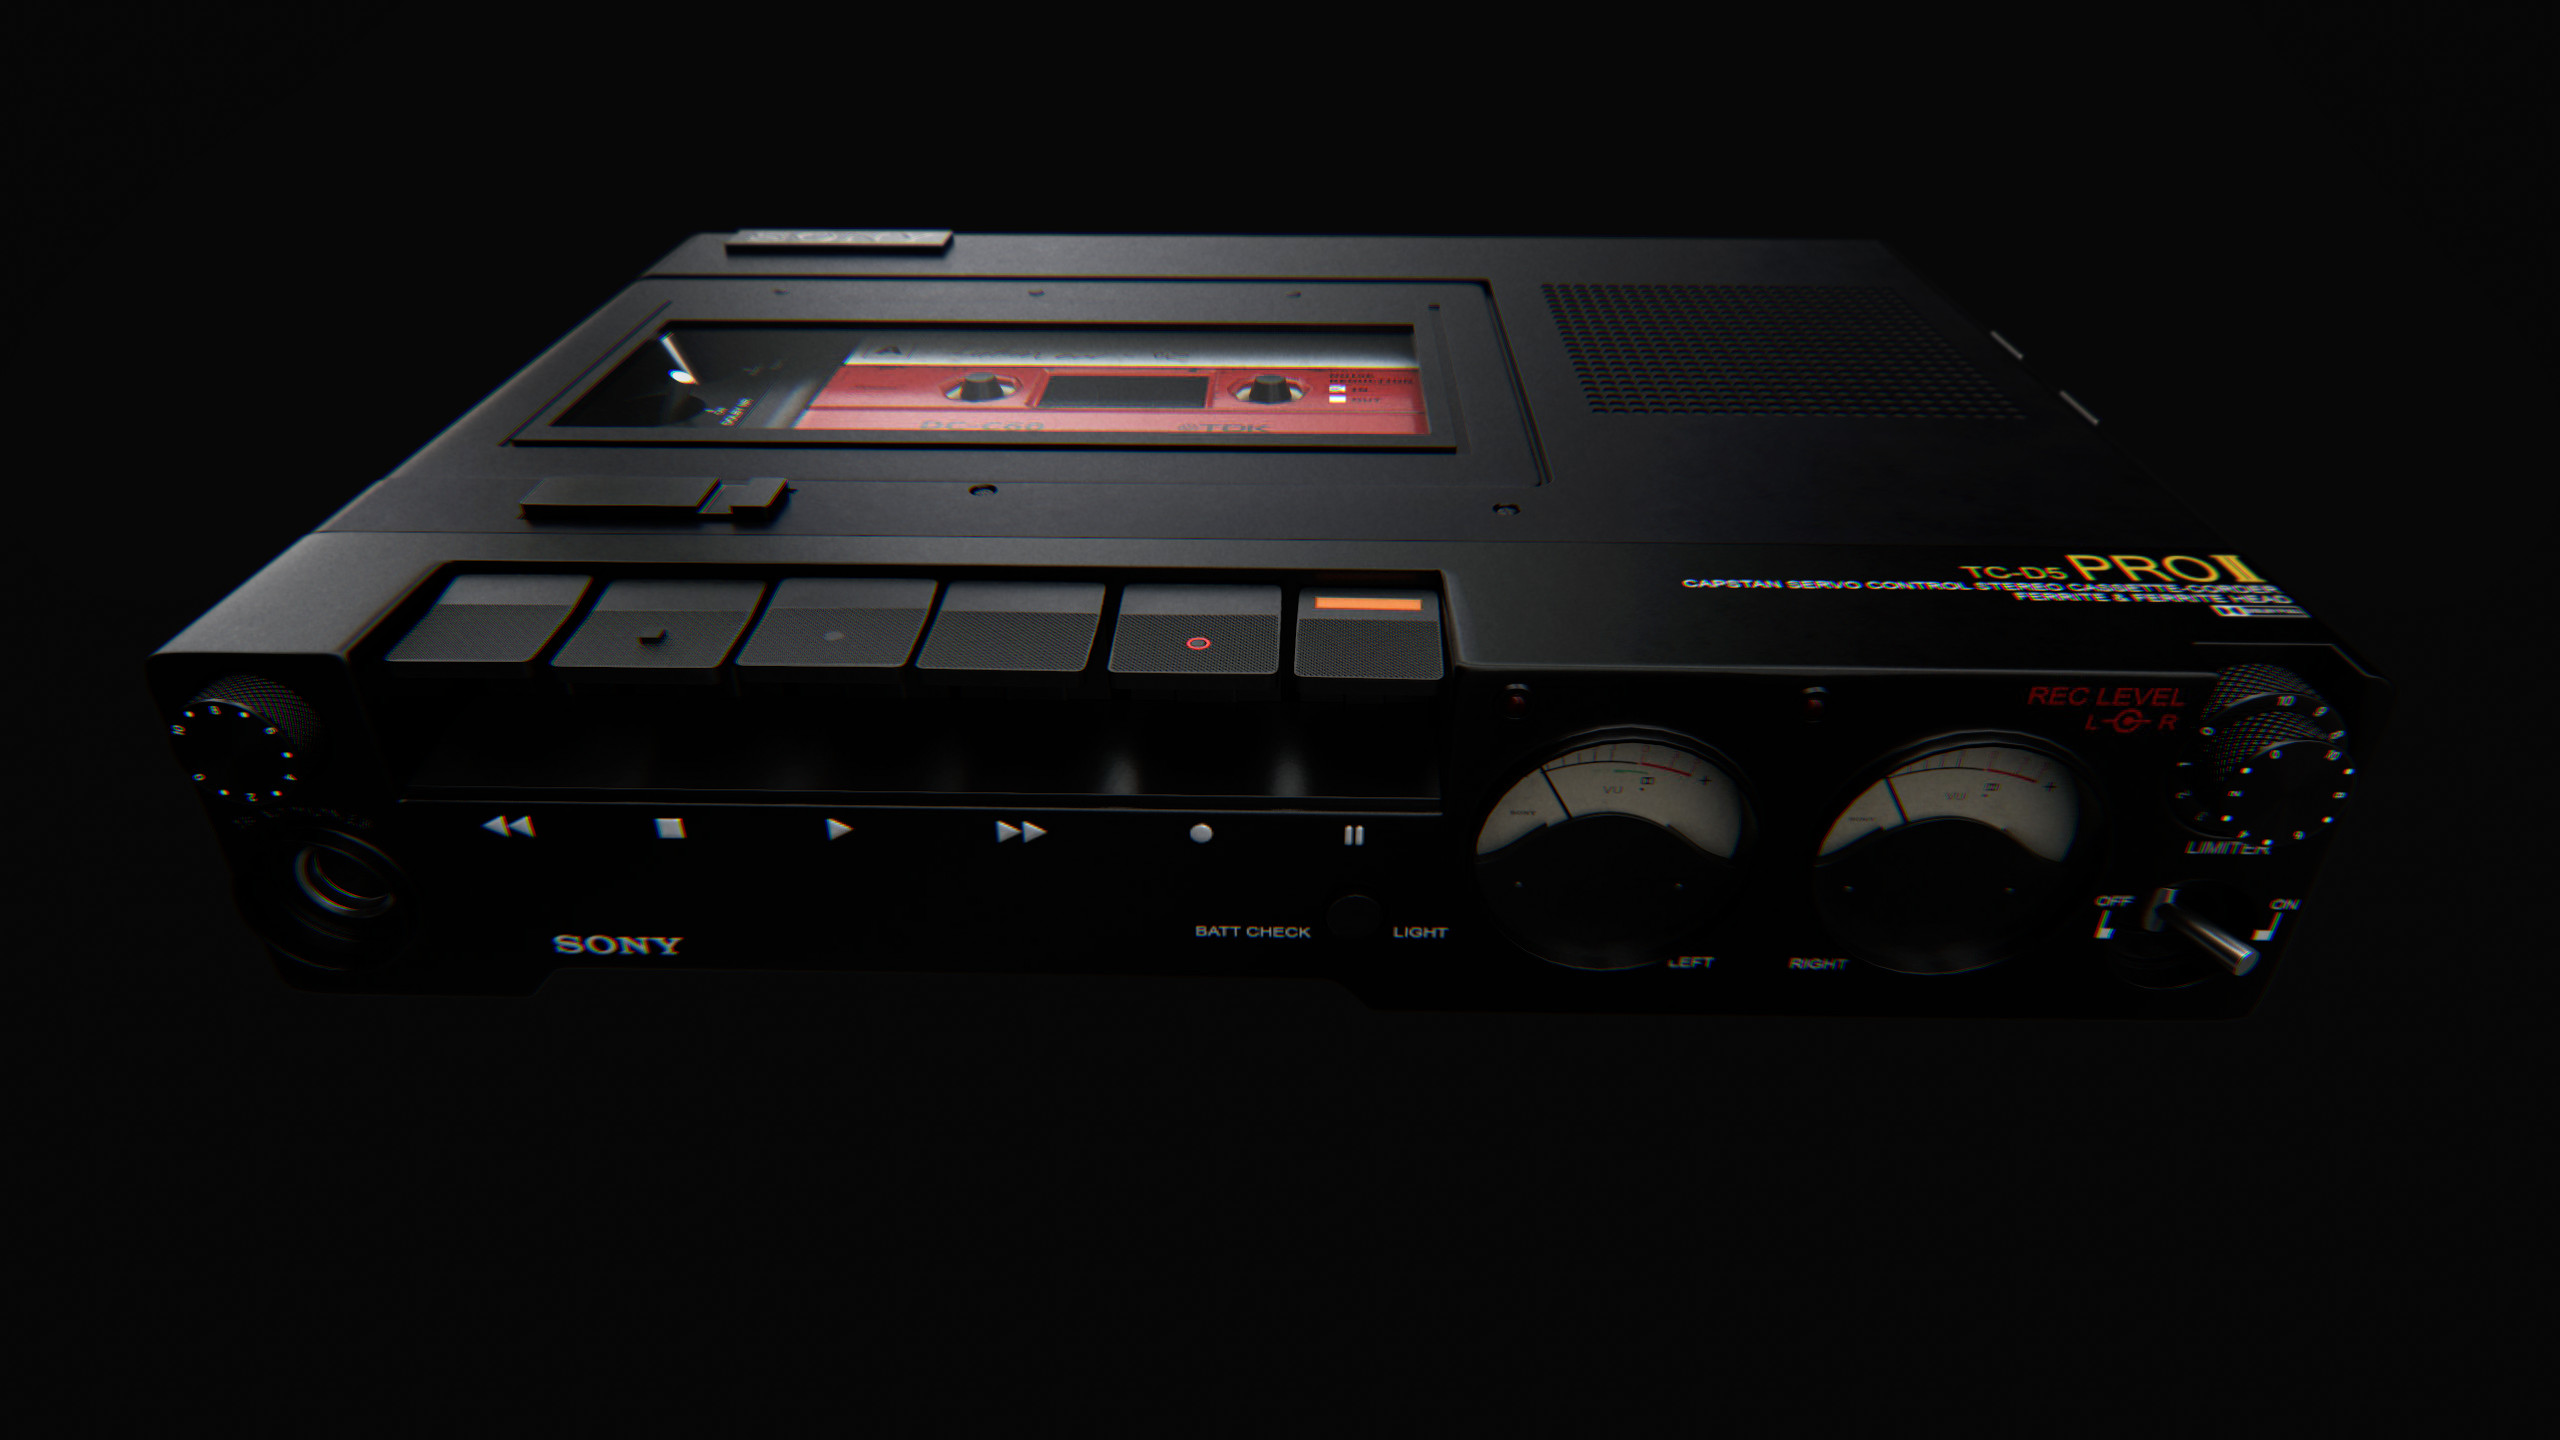 Of thanks as well is the owner of the cassette tape, acquired freely from: https://www.cgtrader.com/items/487726/download-page Reunwrapped with 3ds Max and retextured with Substance Painter 2.